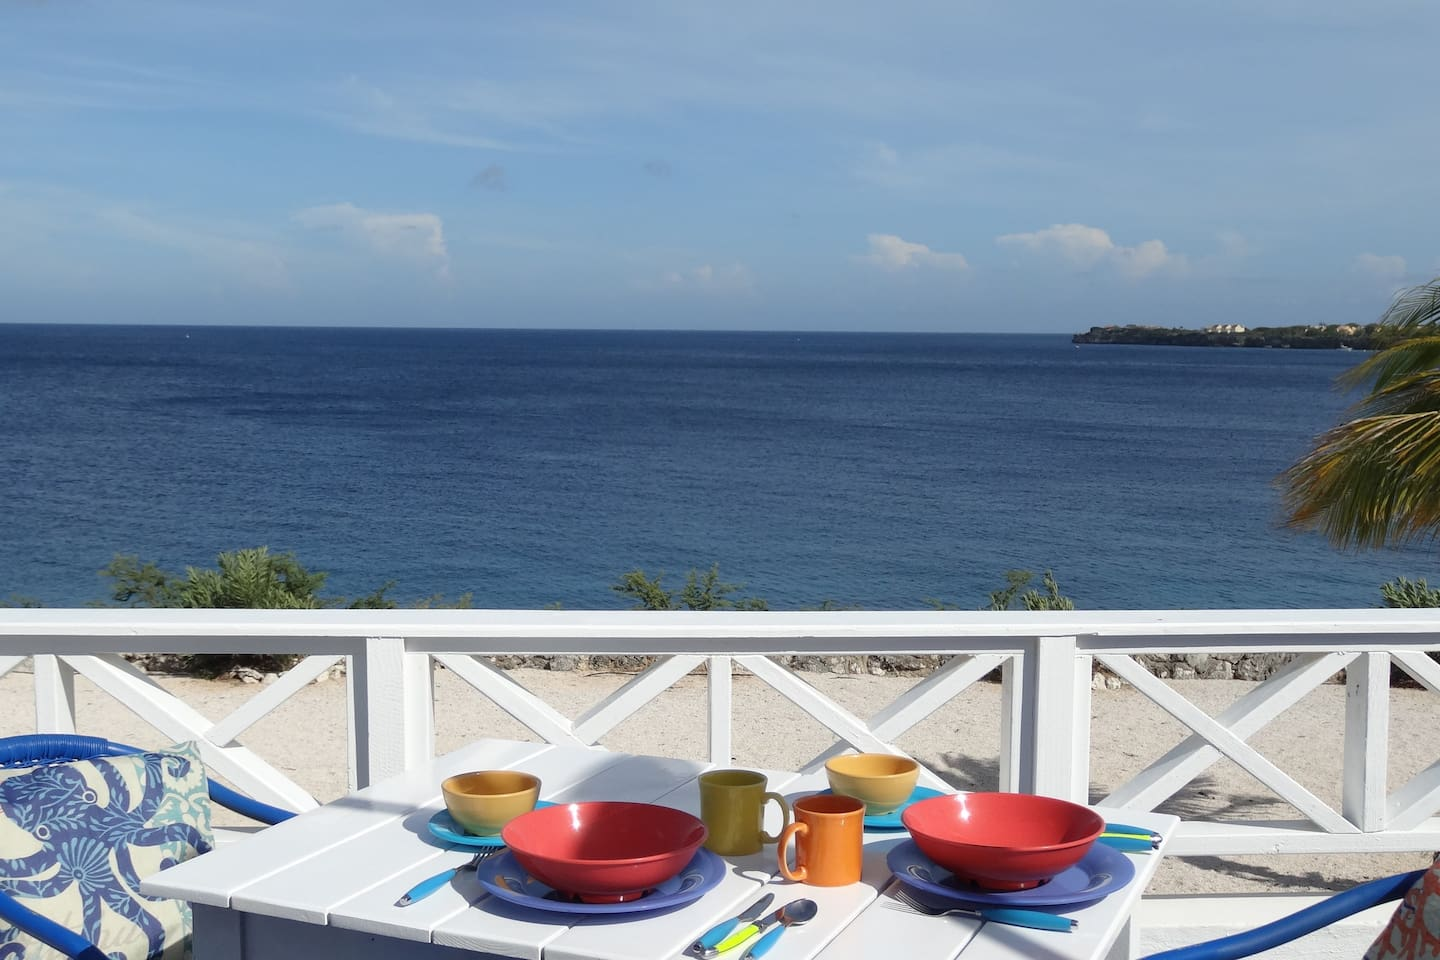 The 2nd floor balcony is a fantastic spot to enjoy a meal, take in a tropical sunset or gaze at the stars.